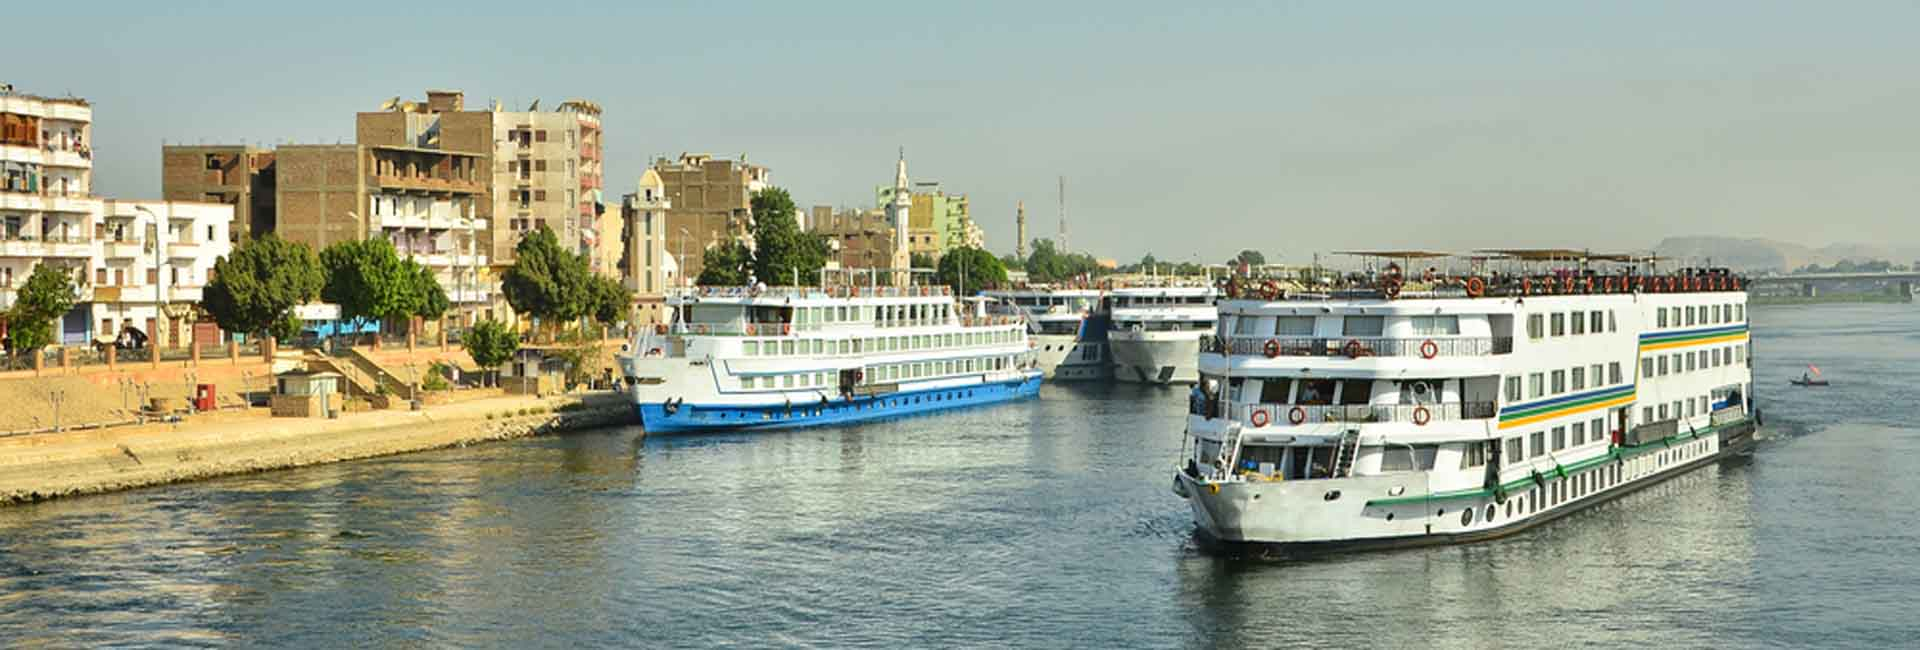 Nile Cruise From Cairo